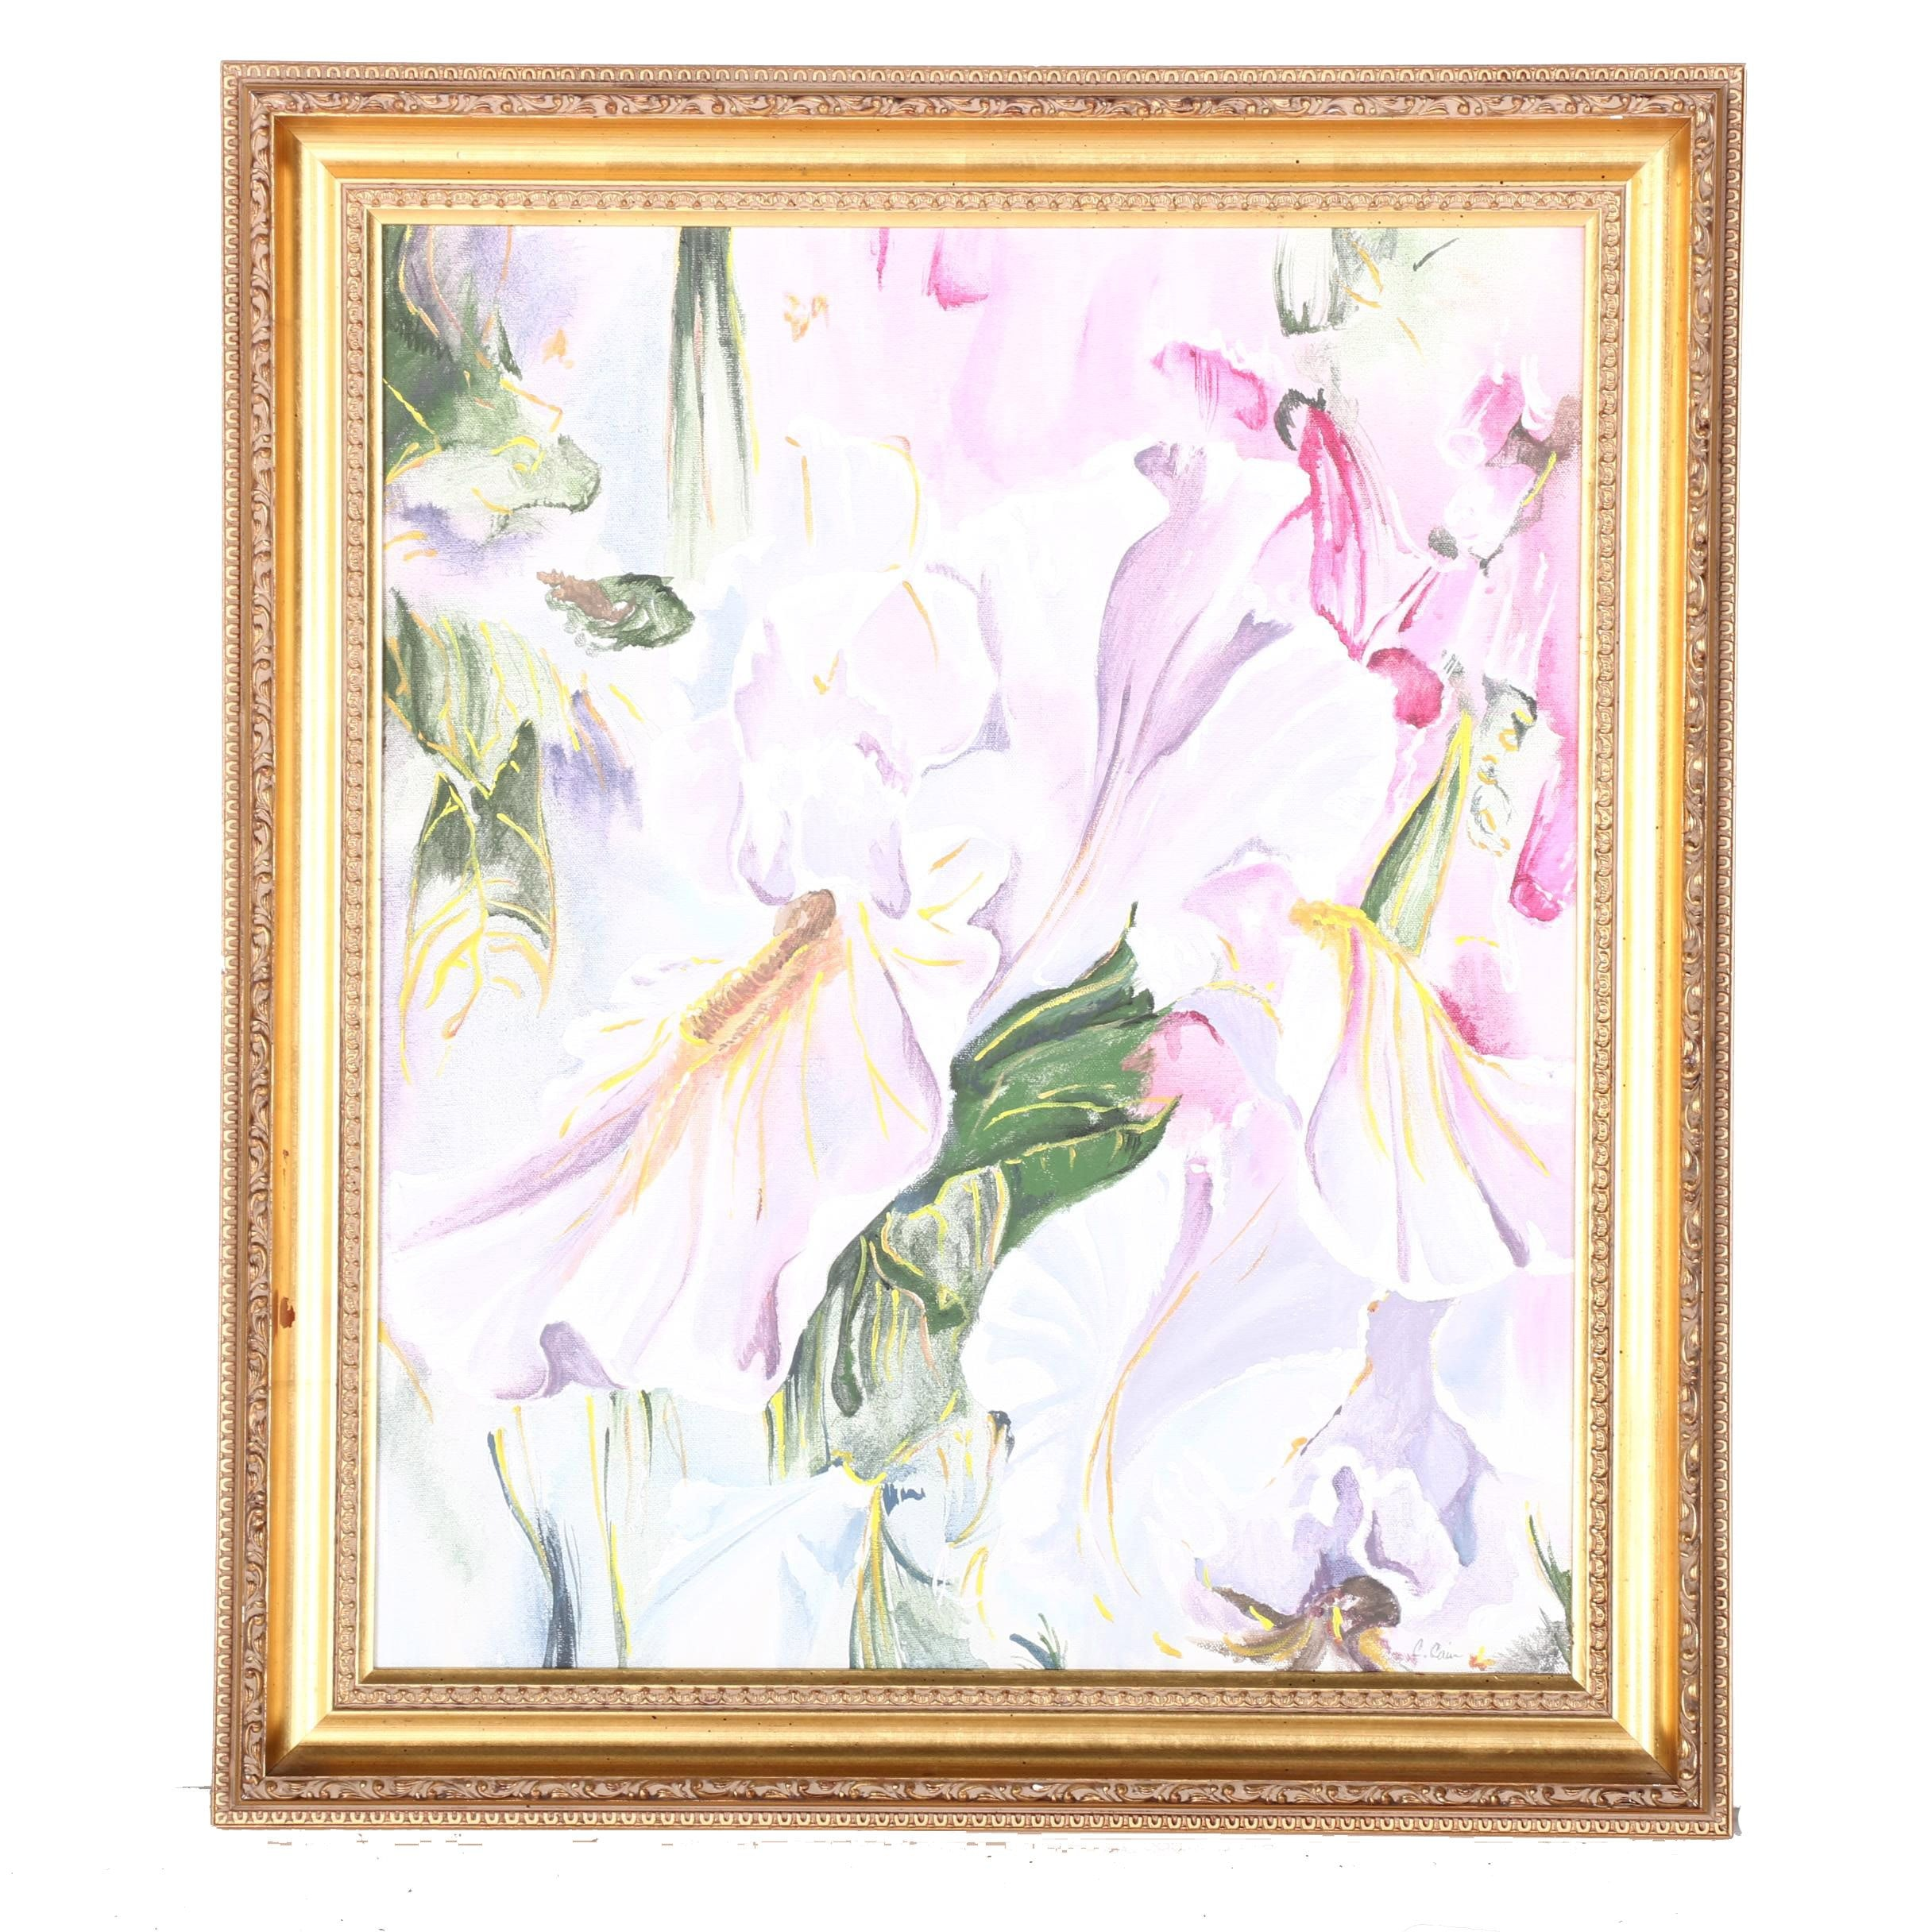 C. Cain Original Acrylic on Canvas Painting of Flowers